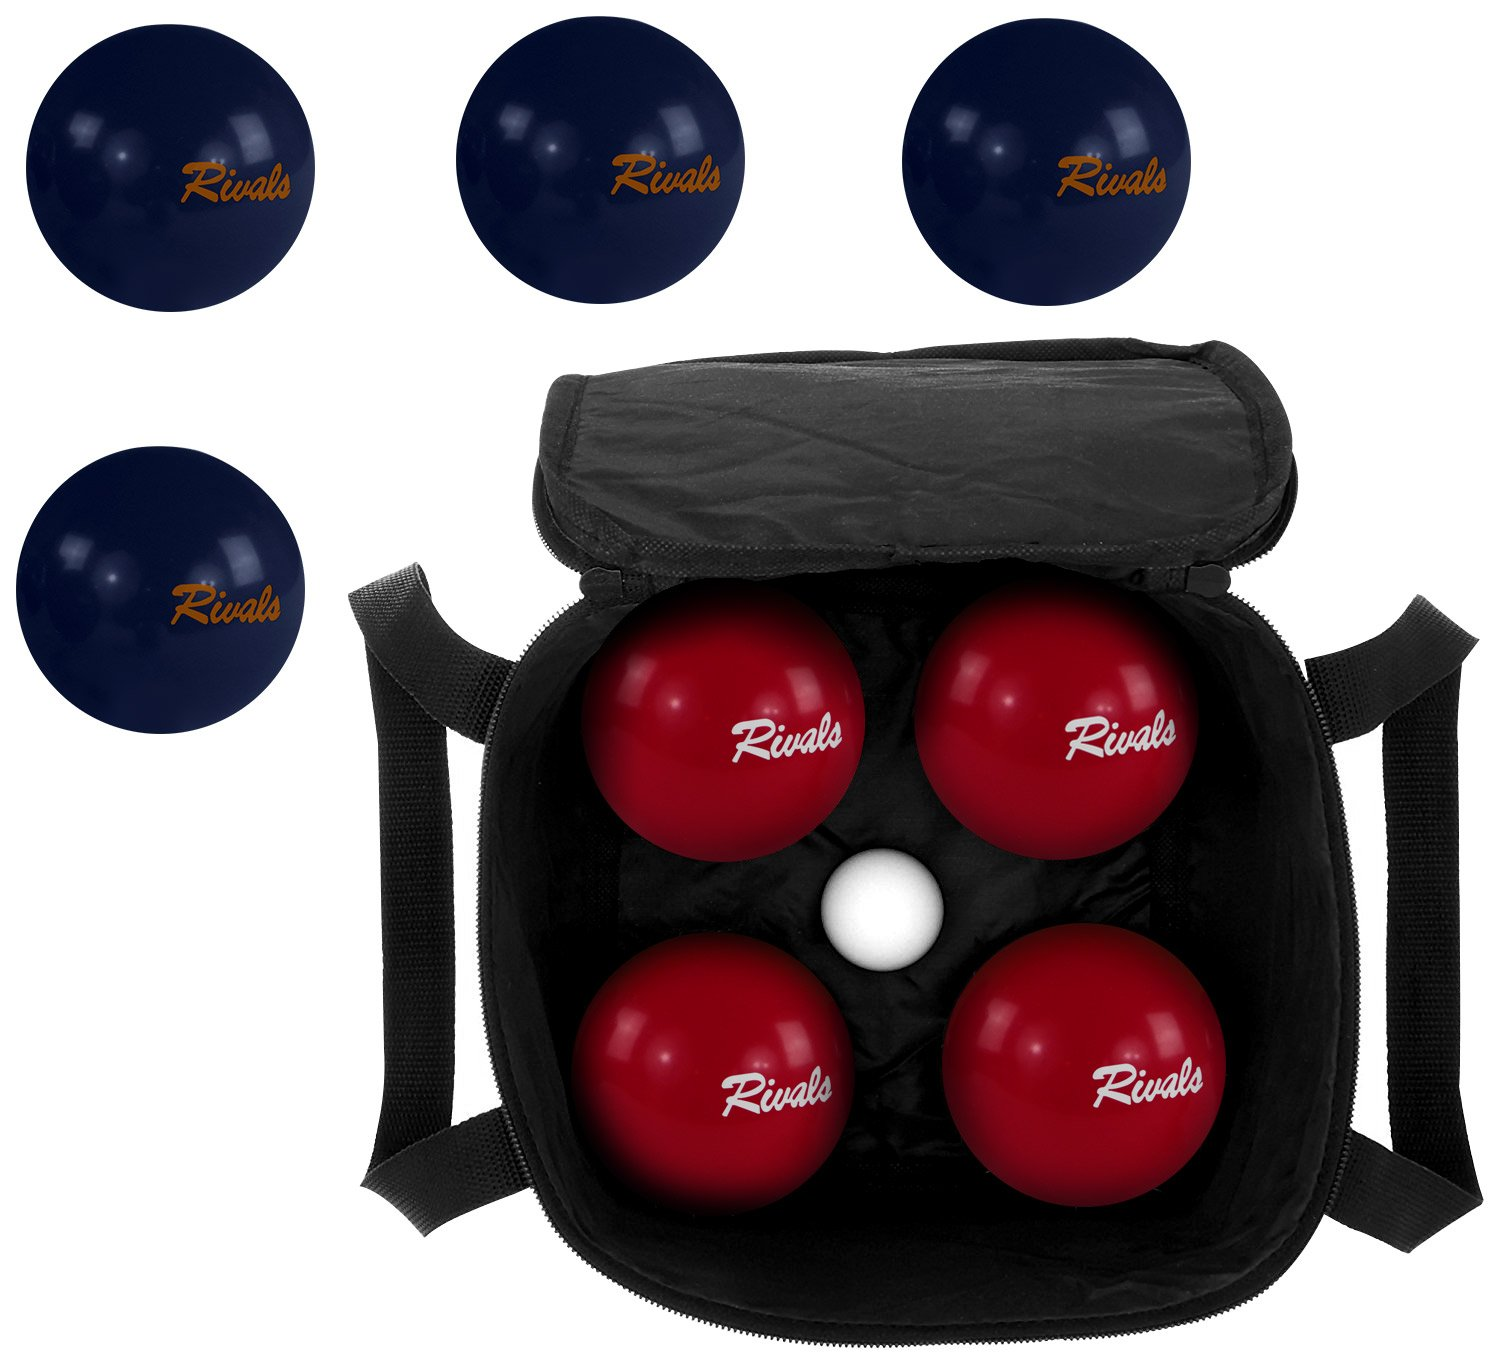 Rivals Bocce Ball Set Includes 4 Crimson and White Bocces Versus 4 Orange and Blue Bocces, 1 Pallino, Measuring Tape, and Carrying Case With Strap | Perfect For The College Fan and Game Day by Titan Performance Products (Image #2)